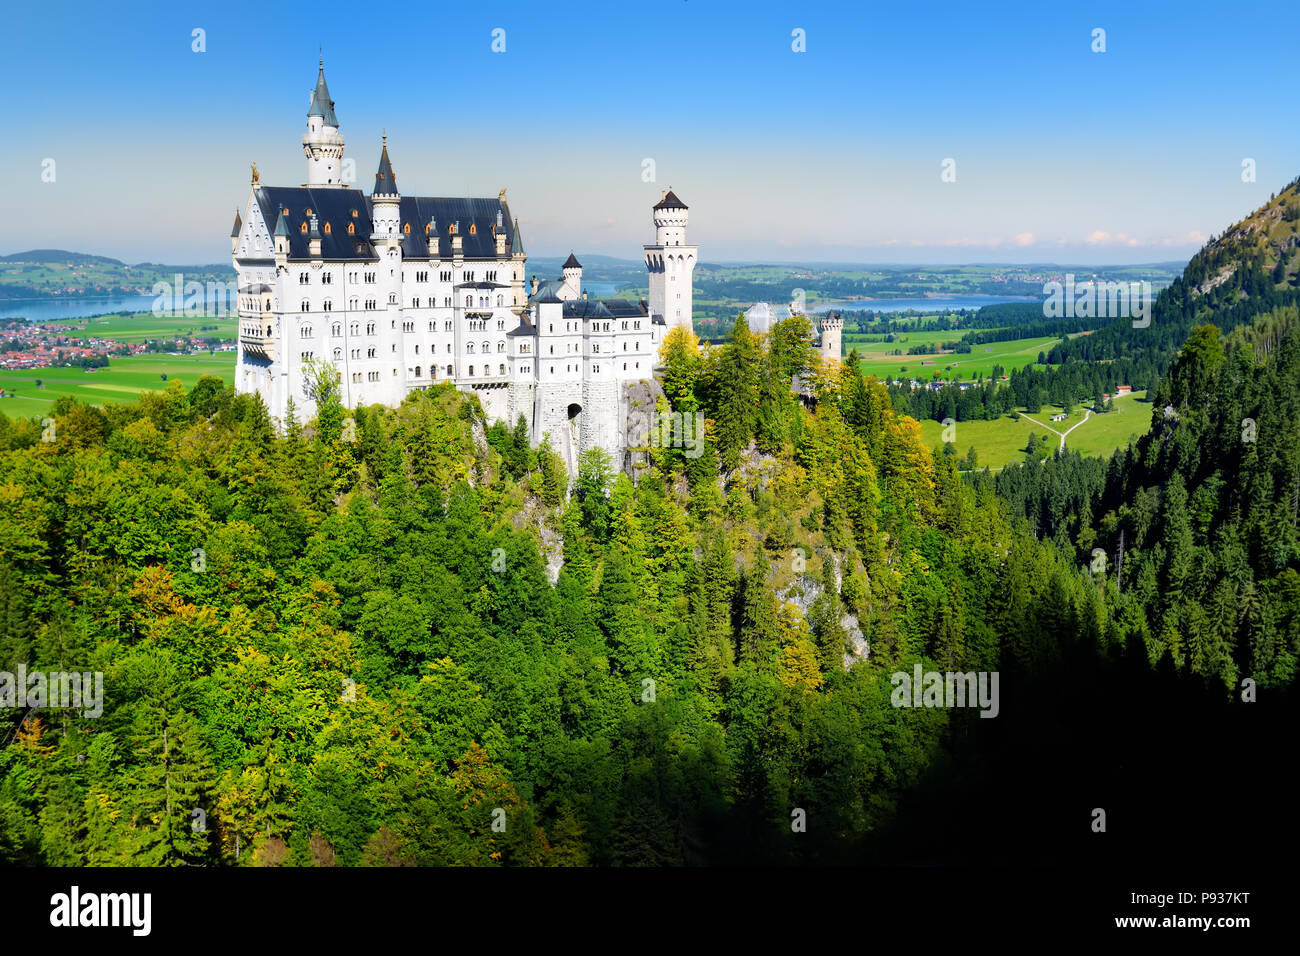 Famous Neuschwanstein Castle, 19th-century Romanesque Revival palace on a rugged hill above the village of Hohenschwangau near Fussen in southwest Bav Stock Photo